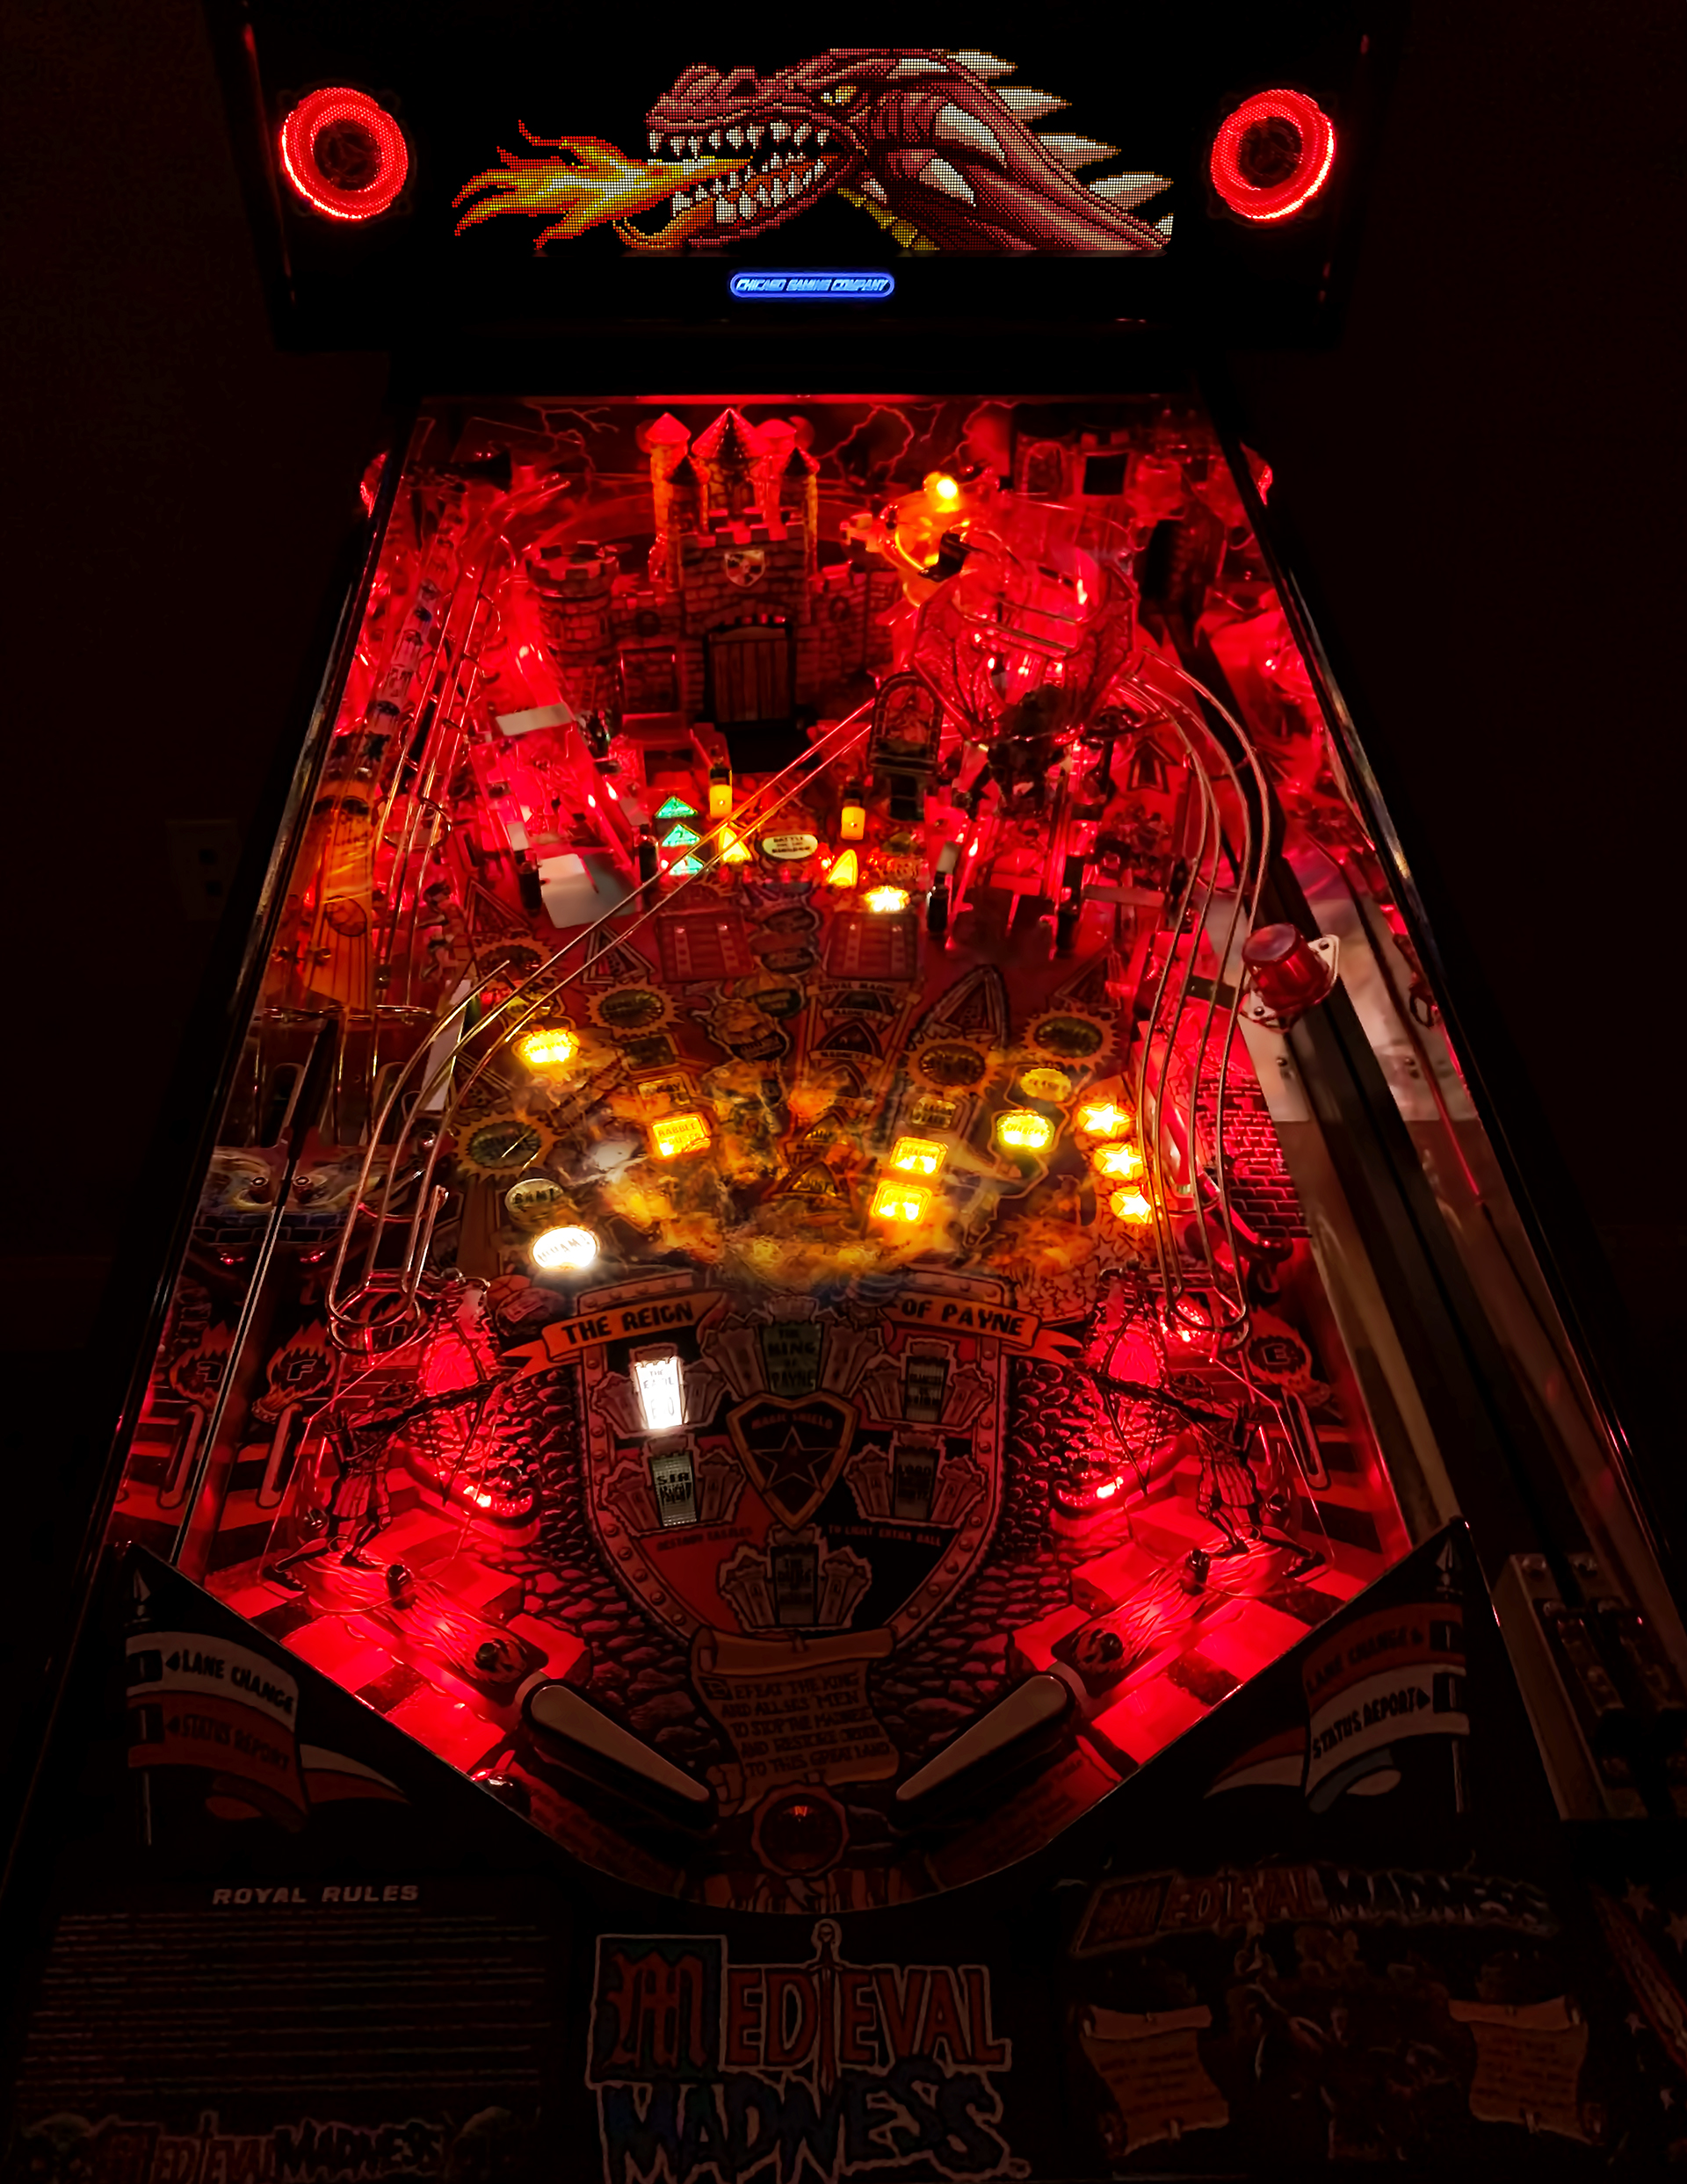 Medieval Madness Playfield Photo Red